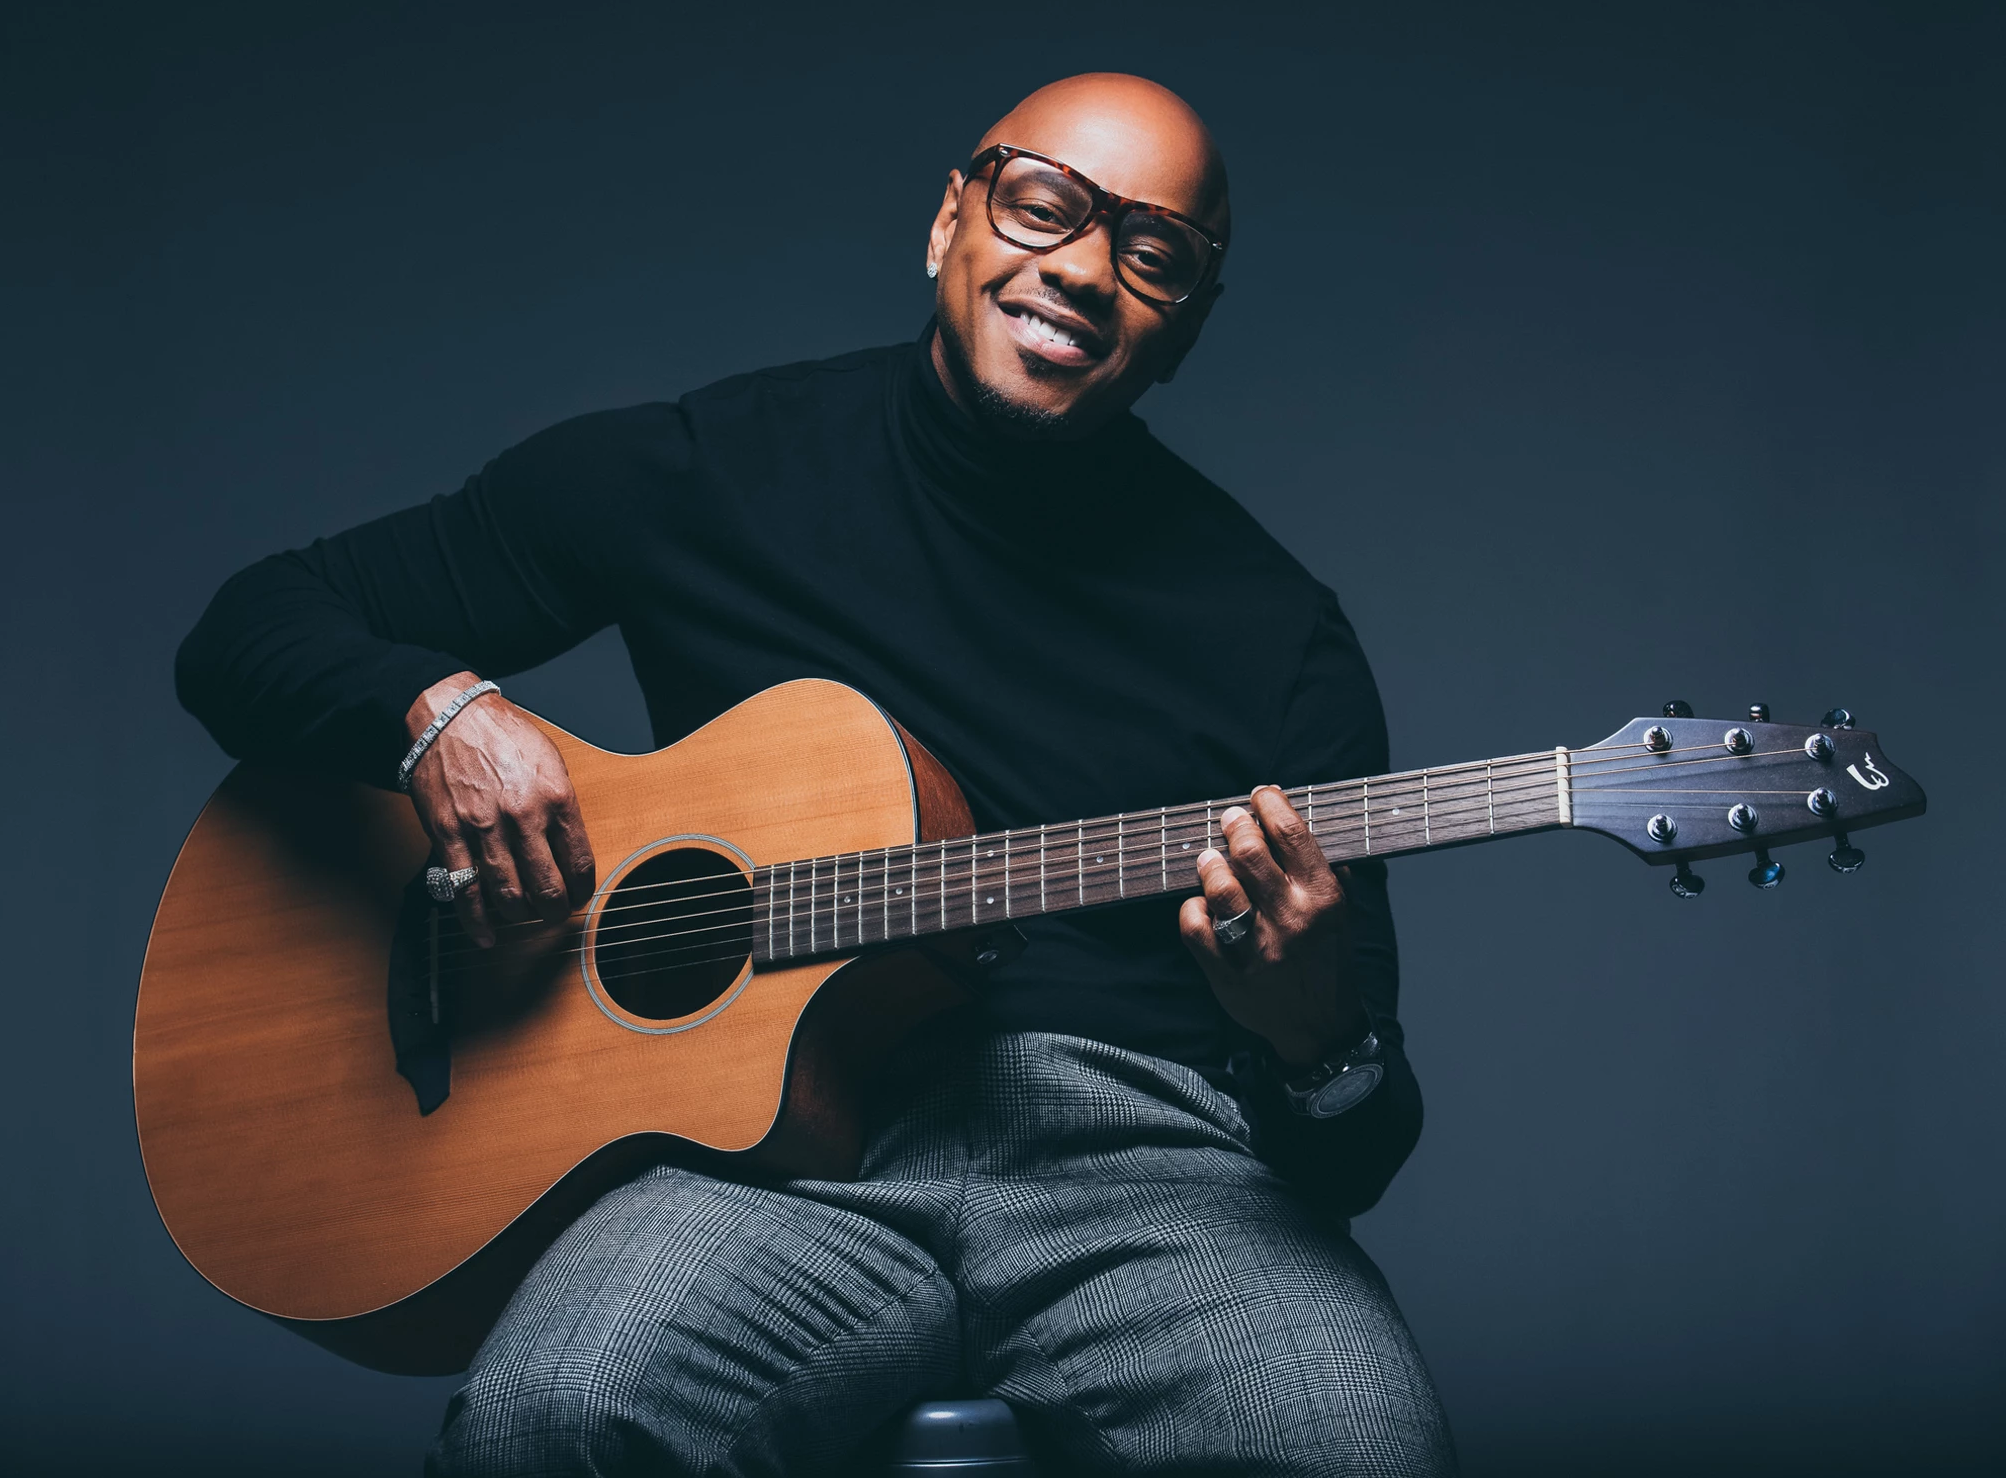 Legendary Singer Donell Jones Converts Setbacks into Positive New Way of Life